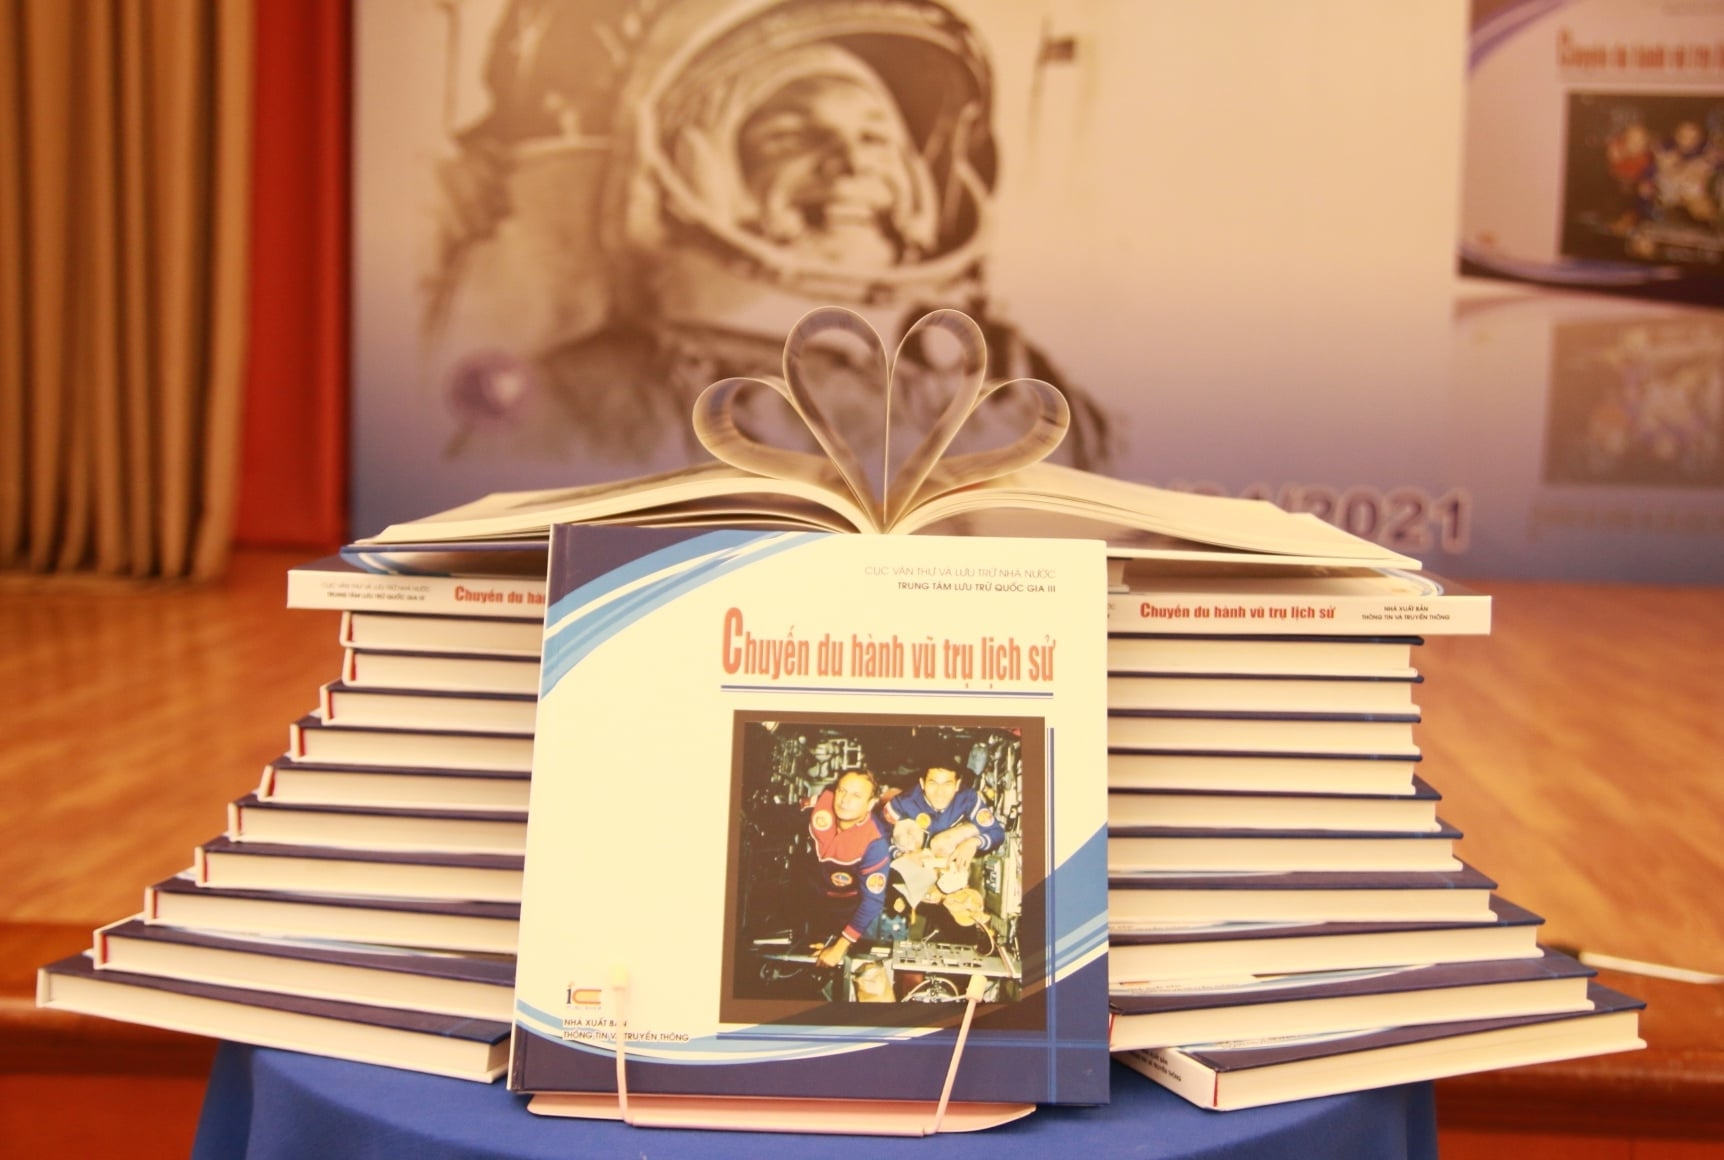 Debuts publication marking 40 year of first Vietnames austronaut's flight to space